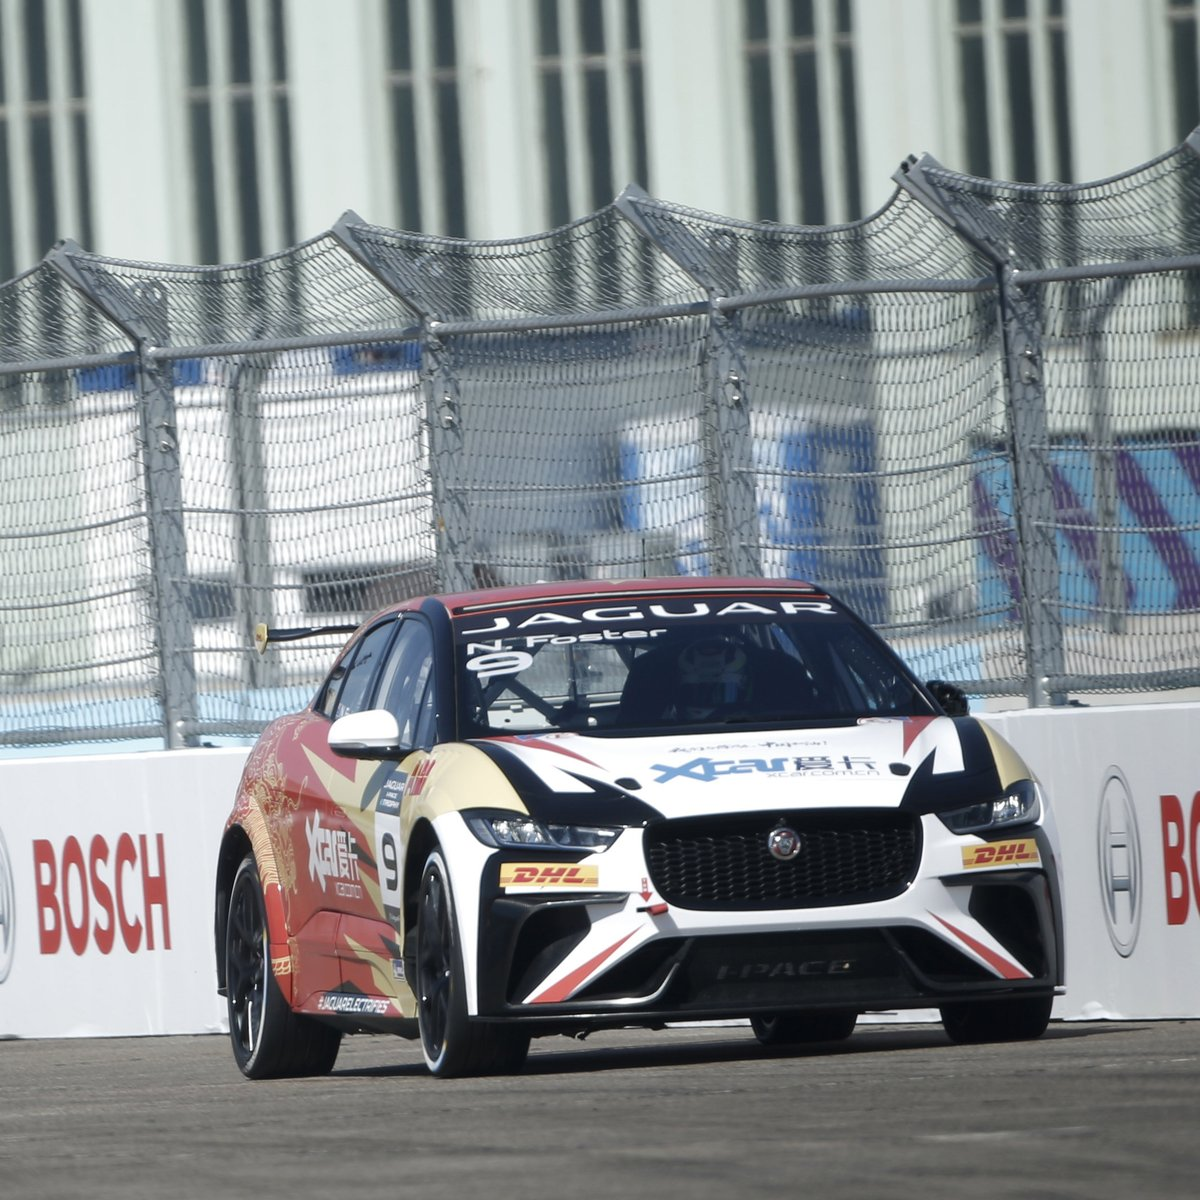 Another strong #IPACE #eTROPHY #Qualifying session this morning, as yesterday's winner Caca Bueno once again takes pole position in Berlin.   With @OsergioJimenez in P2 and @NickFoster13 P3, join us LIVE on YouTube for Round 5 from 16.45 CET: https://t.co/ZjxBgALkKa  #BerlinEPrix https://t.co/vOcpCizOpP